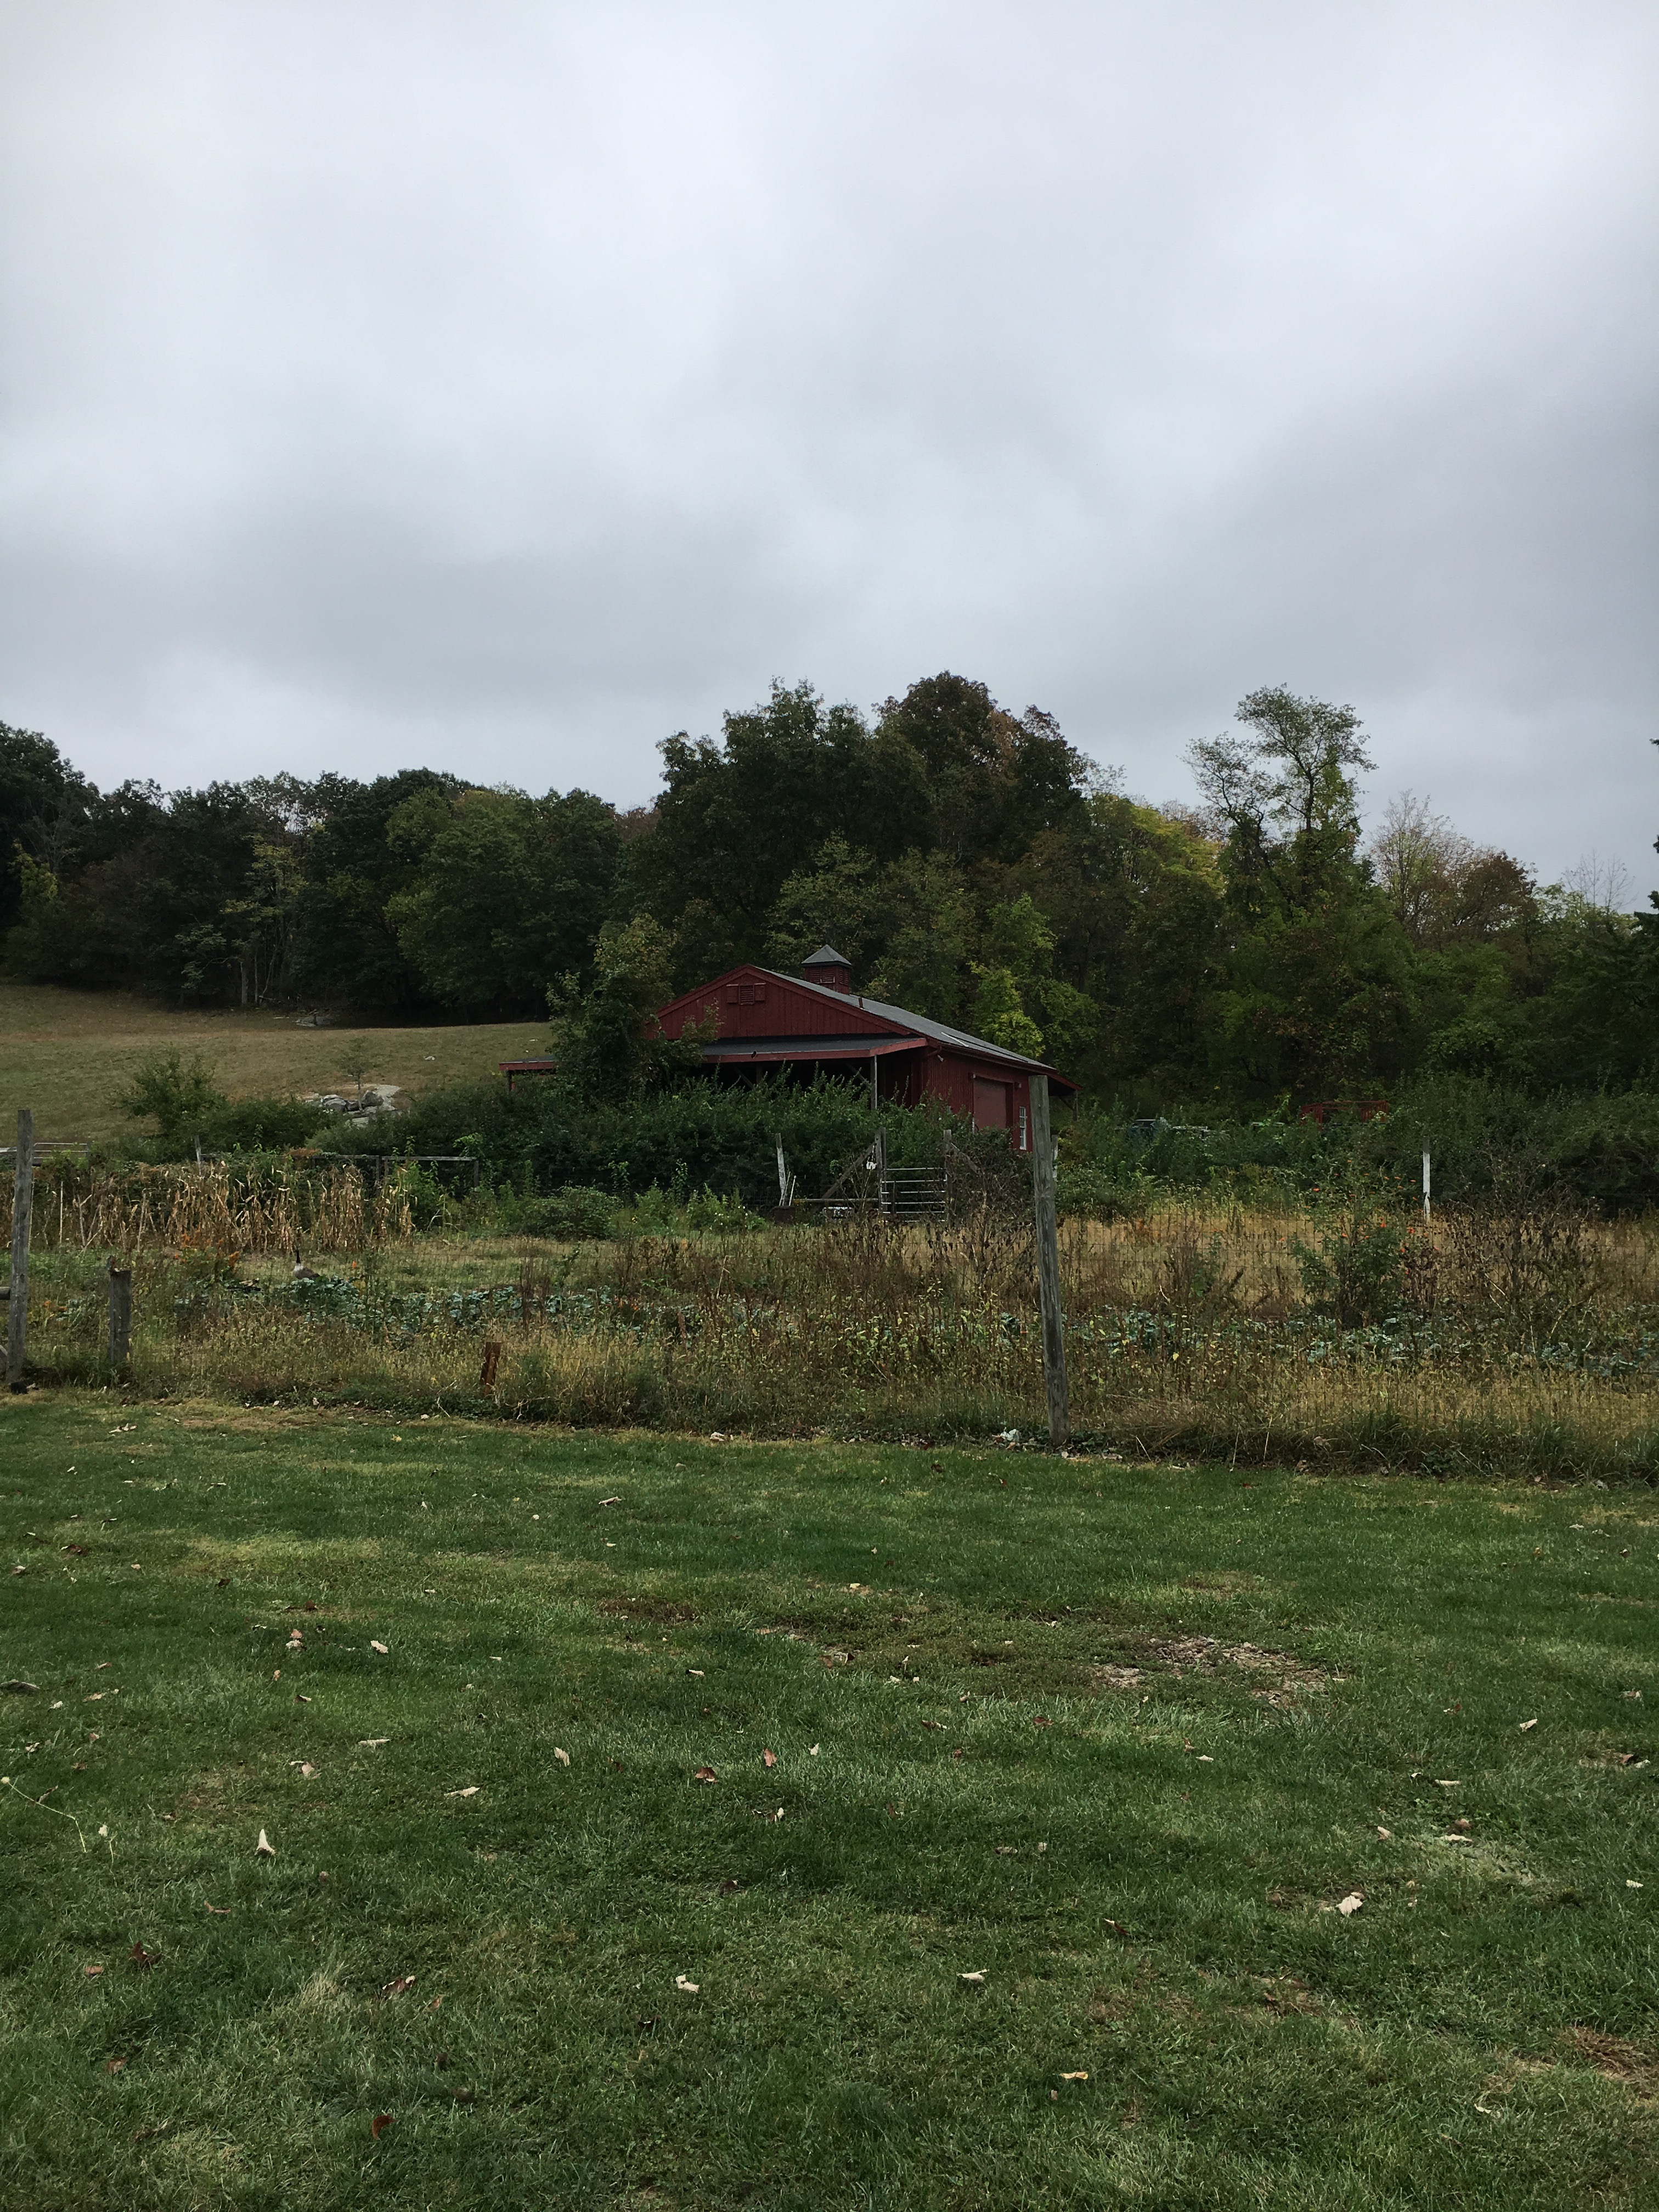 visit to muscoot farm